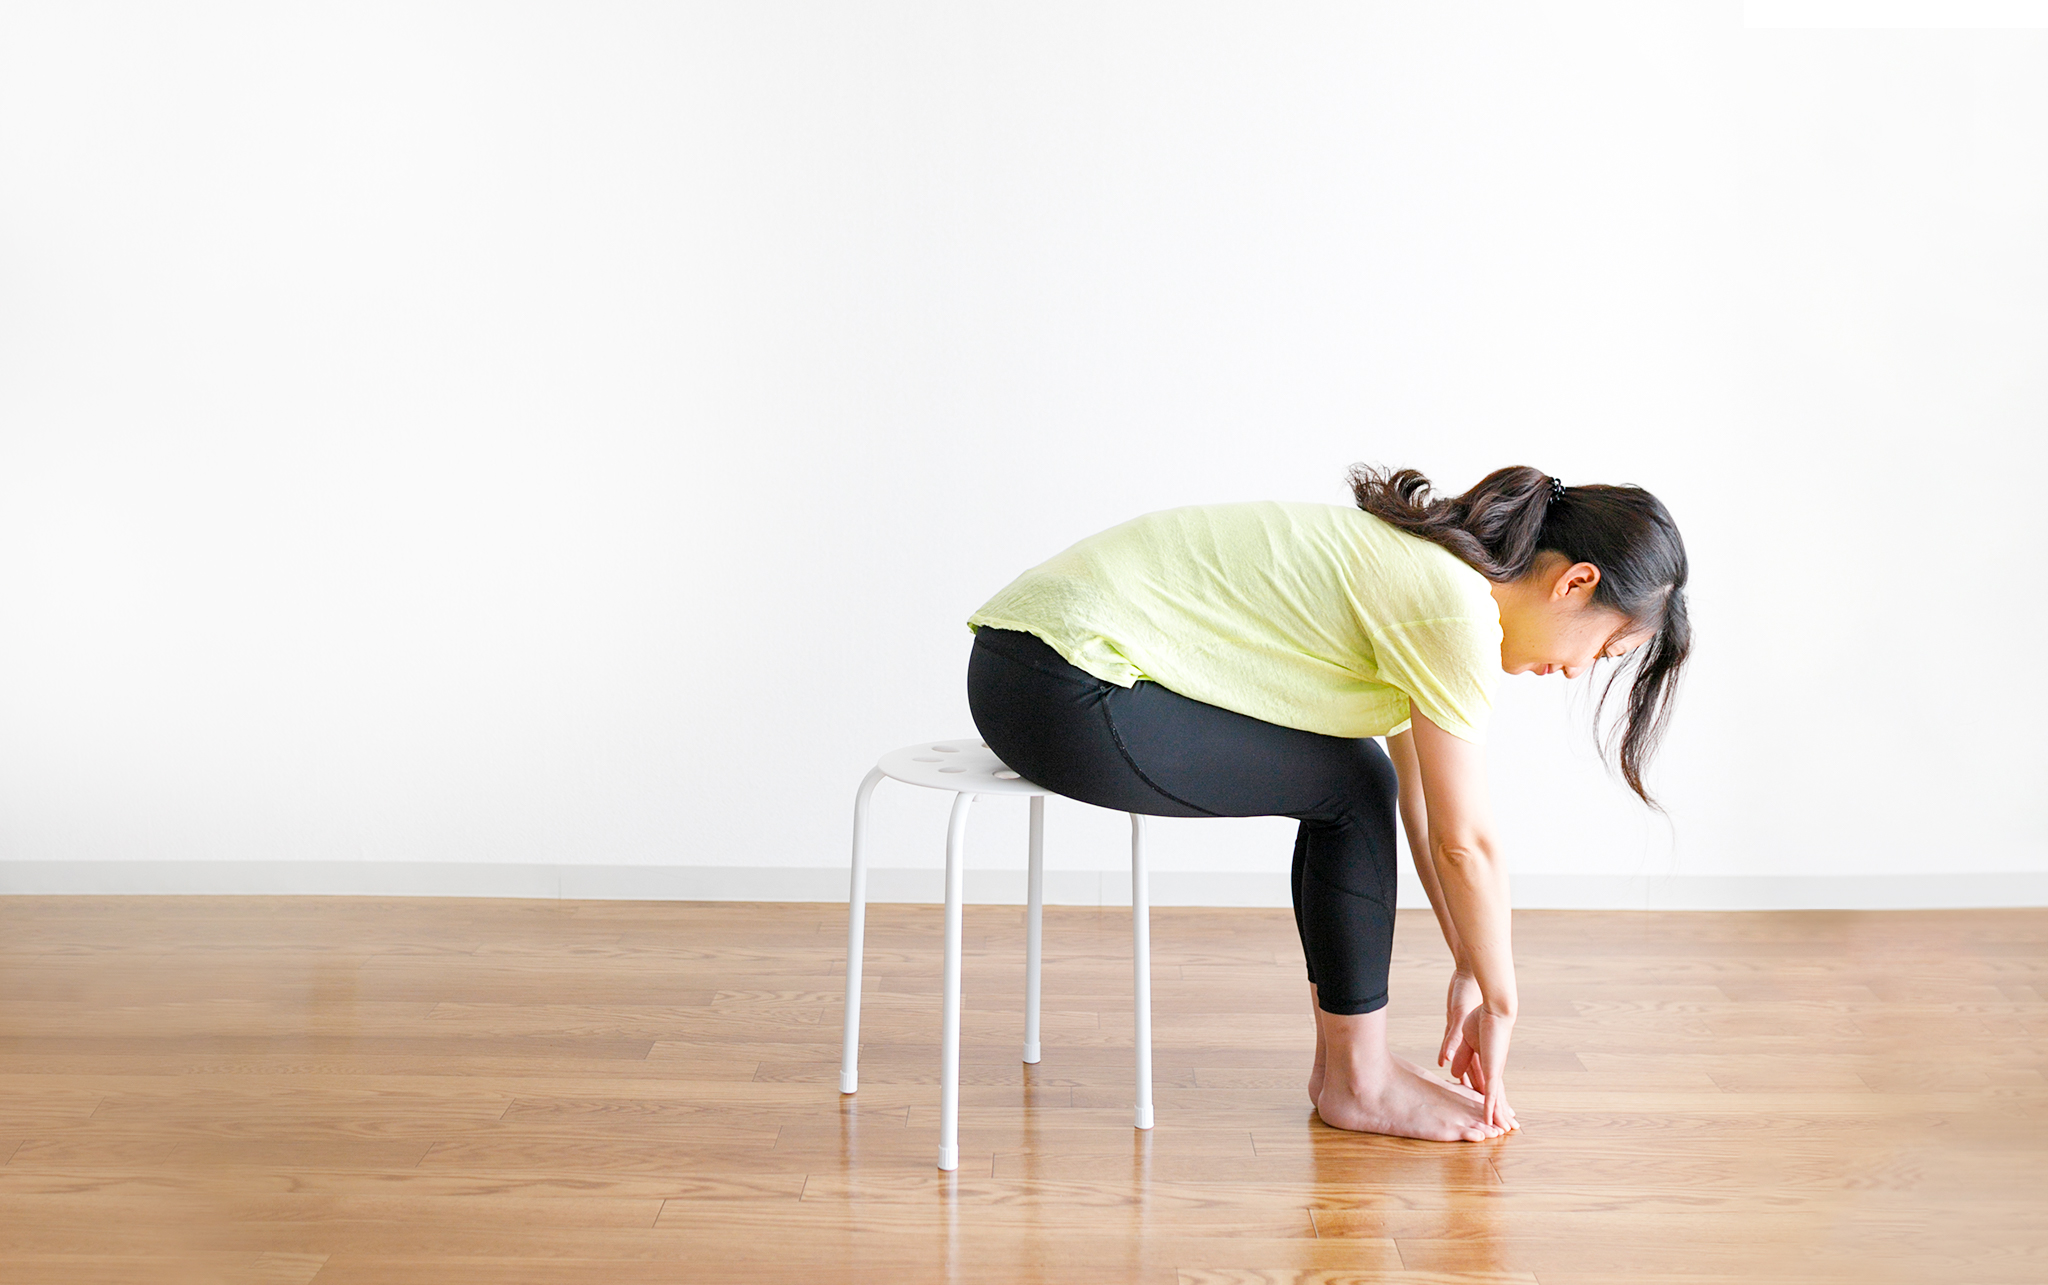 Chair yoga poses are adapted in a way which allows seniors and those with restricted mobility to engage and gain the many benefits of the yoga practice.